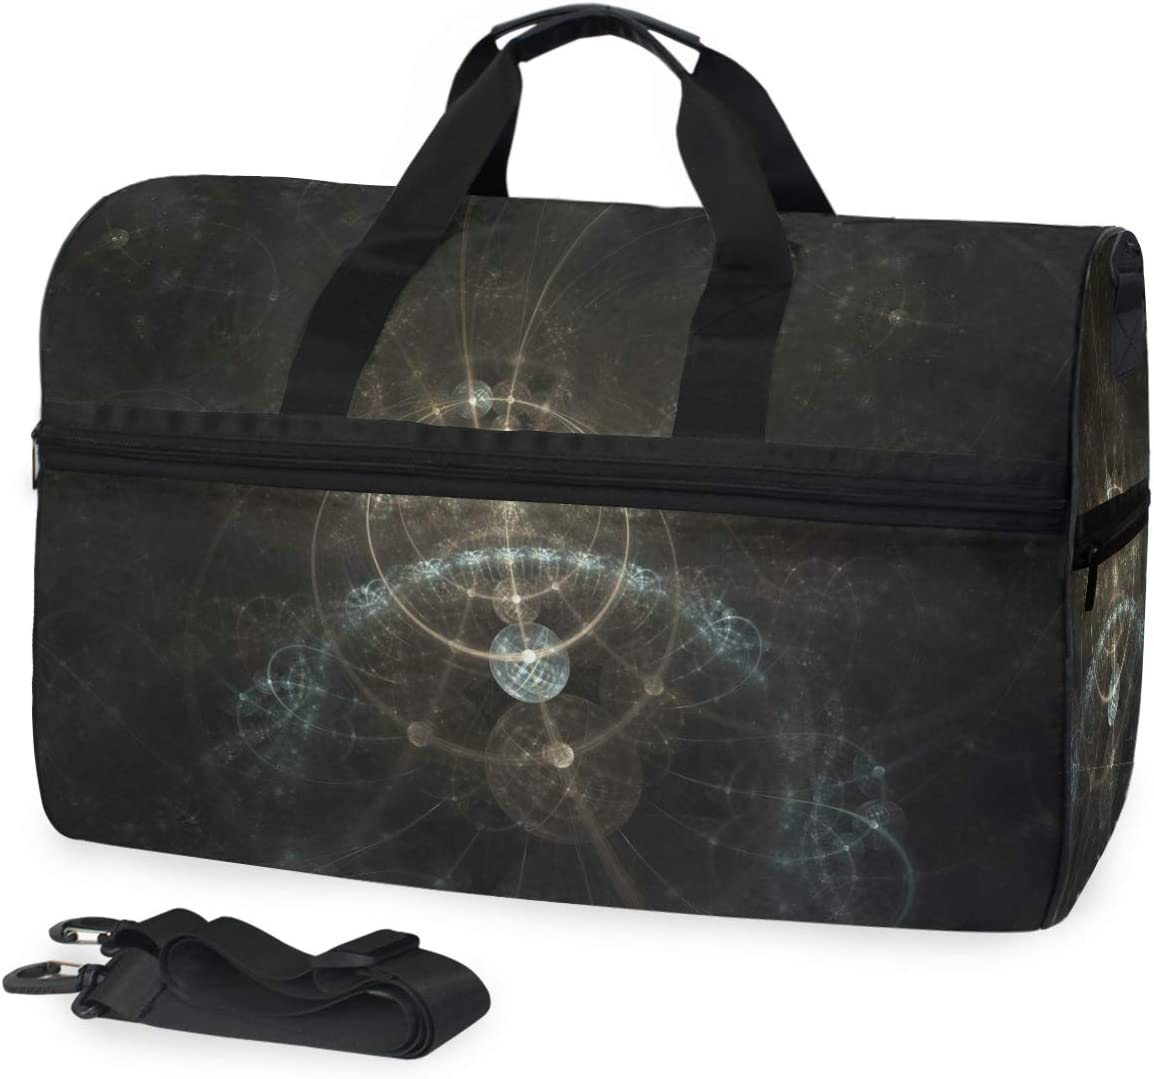 FANTAZIO Abstract Fractal Physical Mathematical Space Sports Duffle Bag Gym Bag Travel Duffel with Adjustable Strap